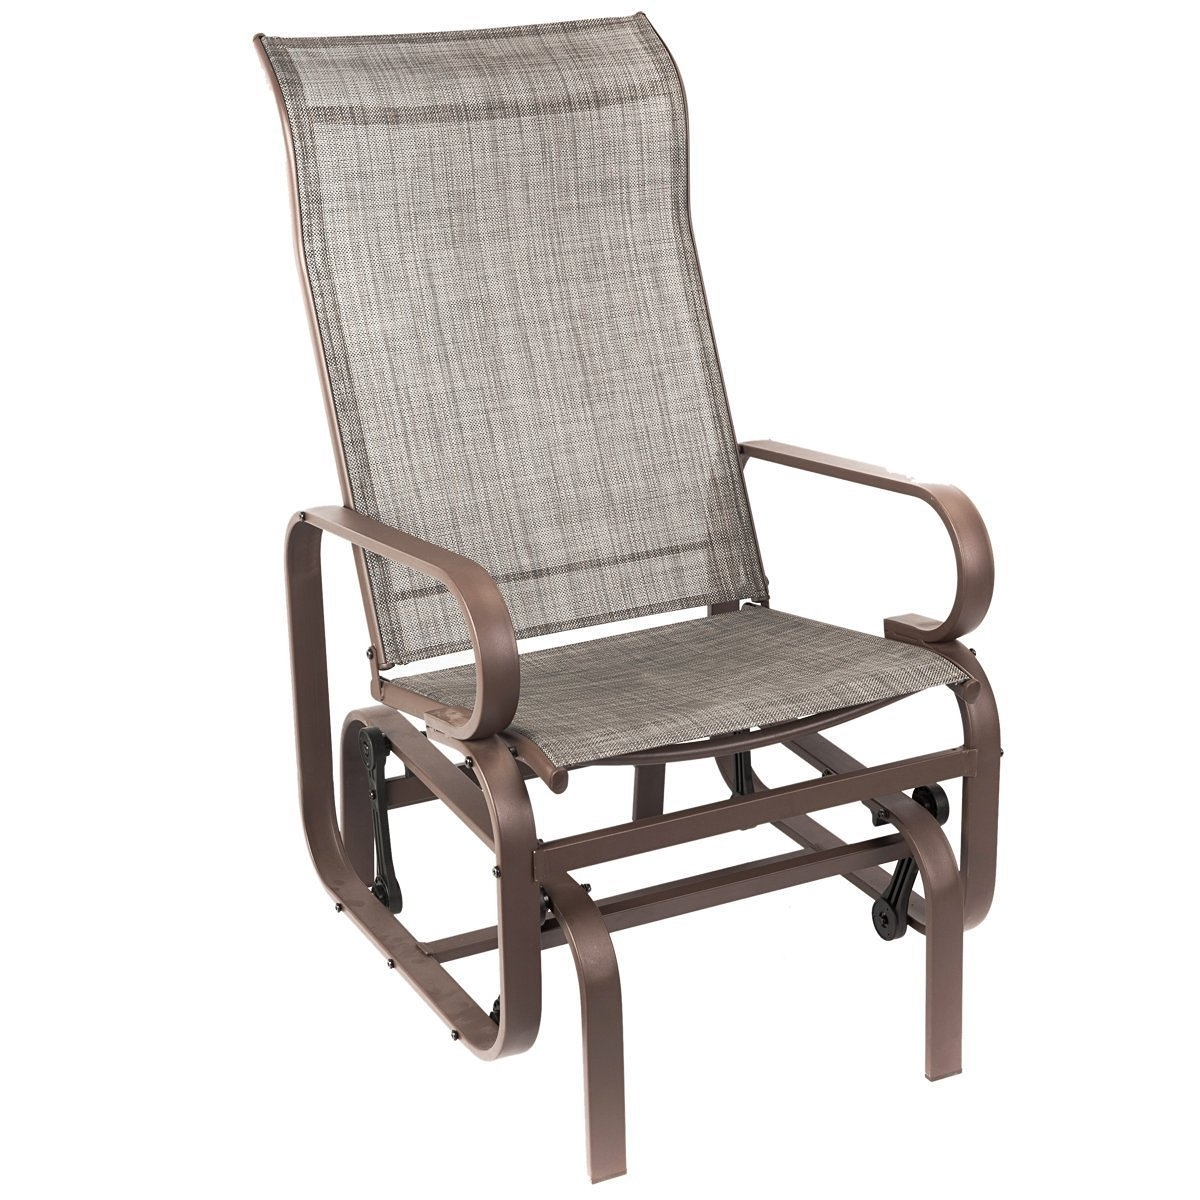 Preferred Stackable Patio Rocking Chairs In Resin Outdoor Patio Rocking Chair – Outdoor Designs (View 5 of 15)